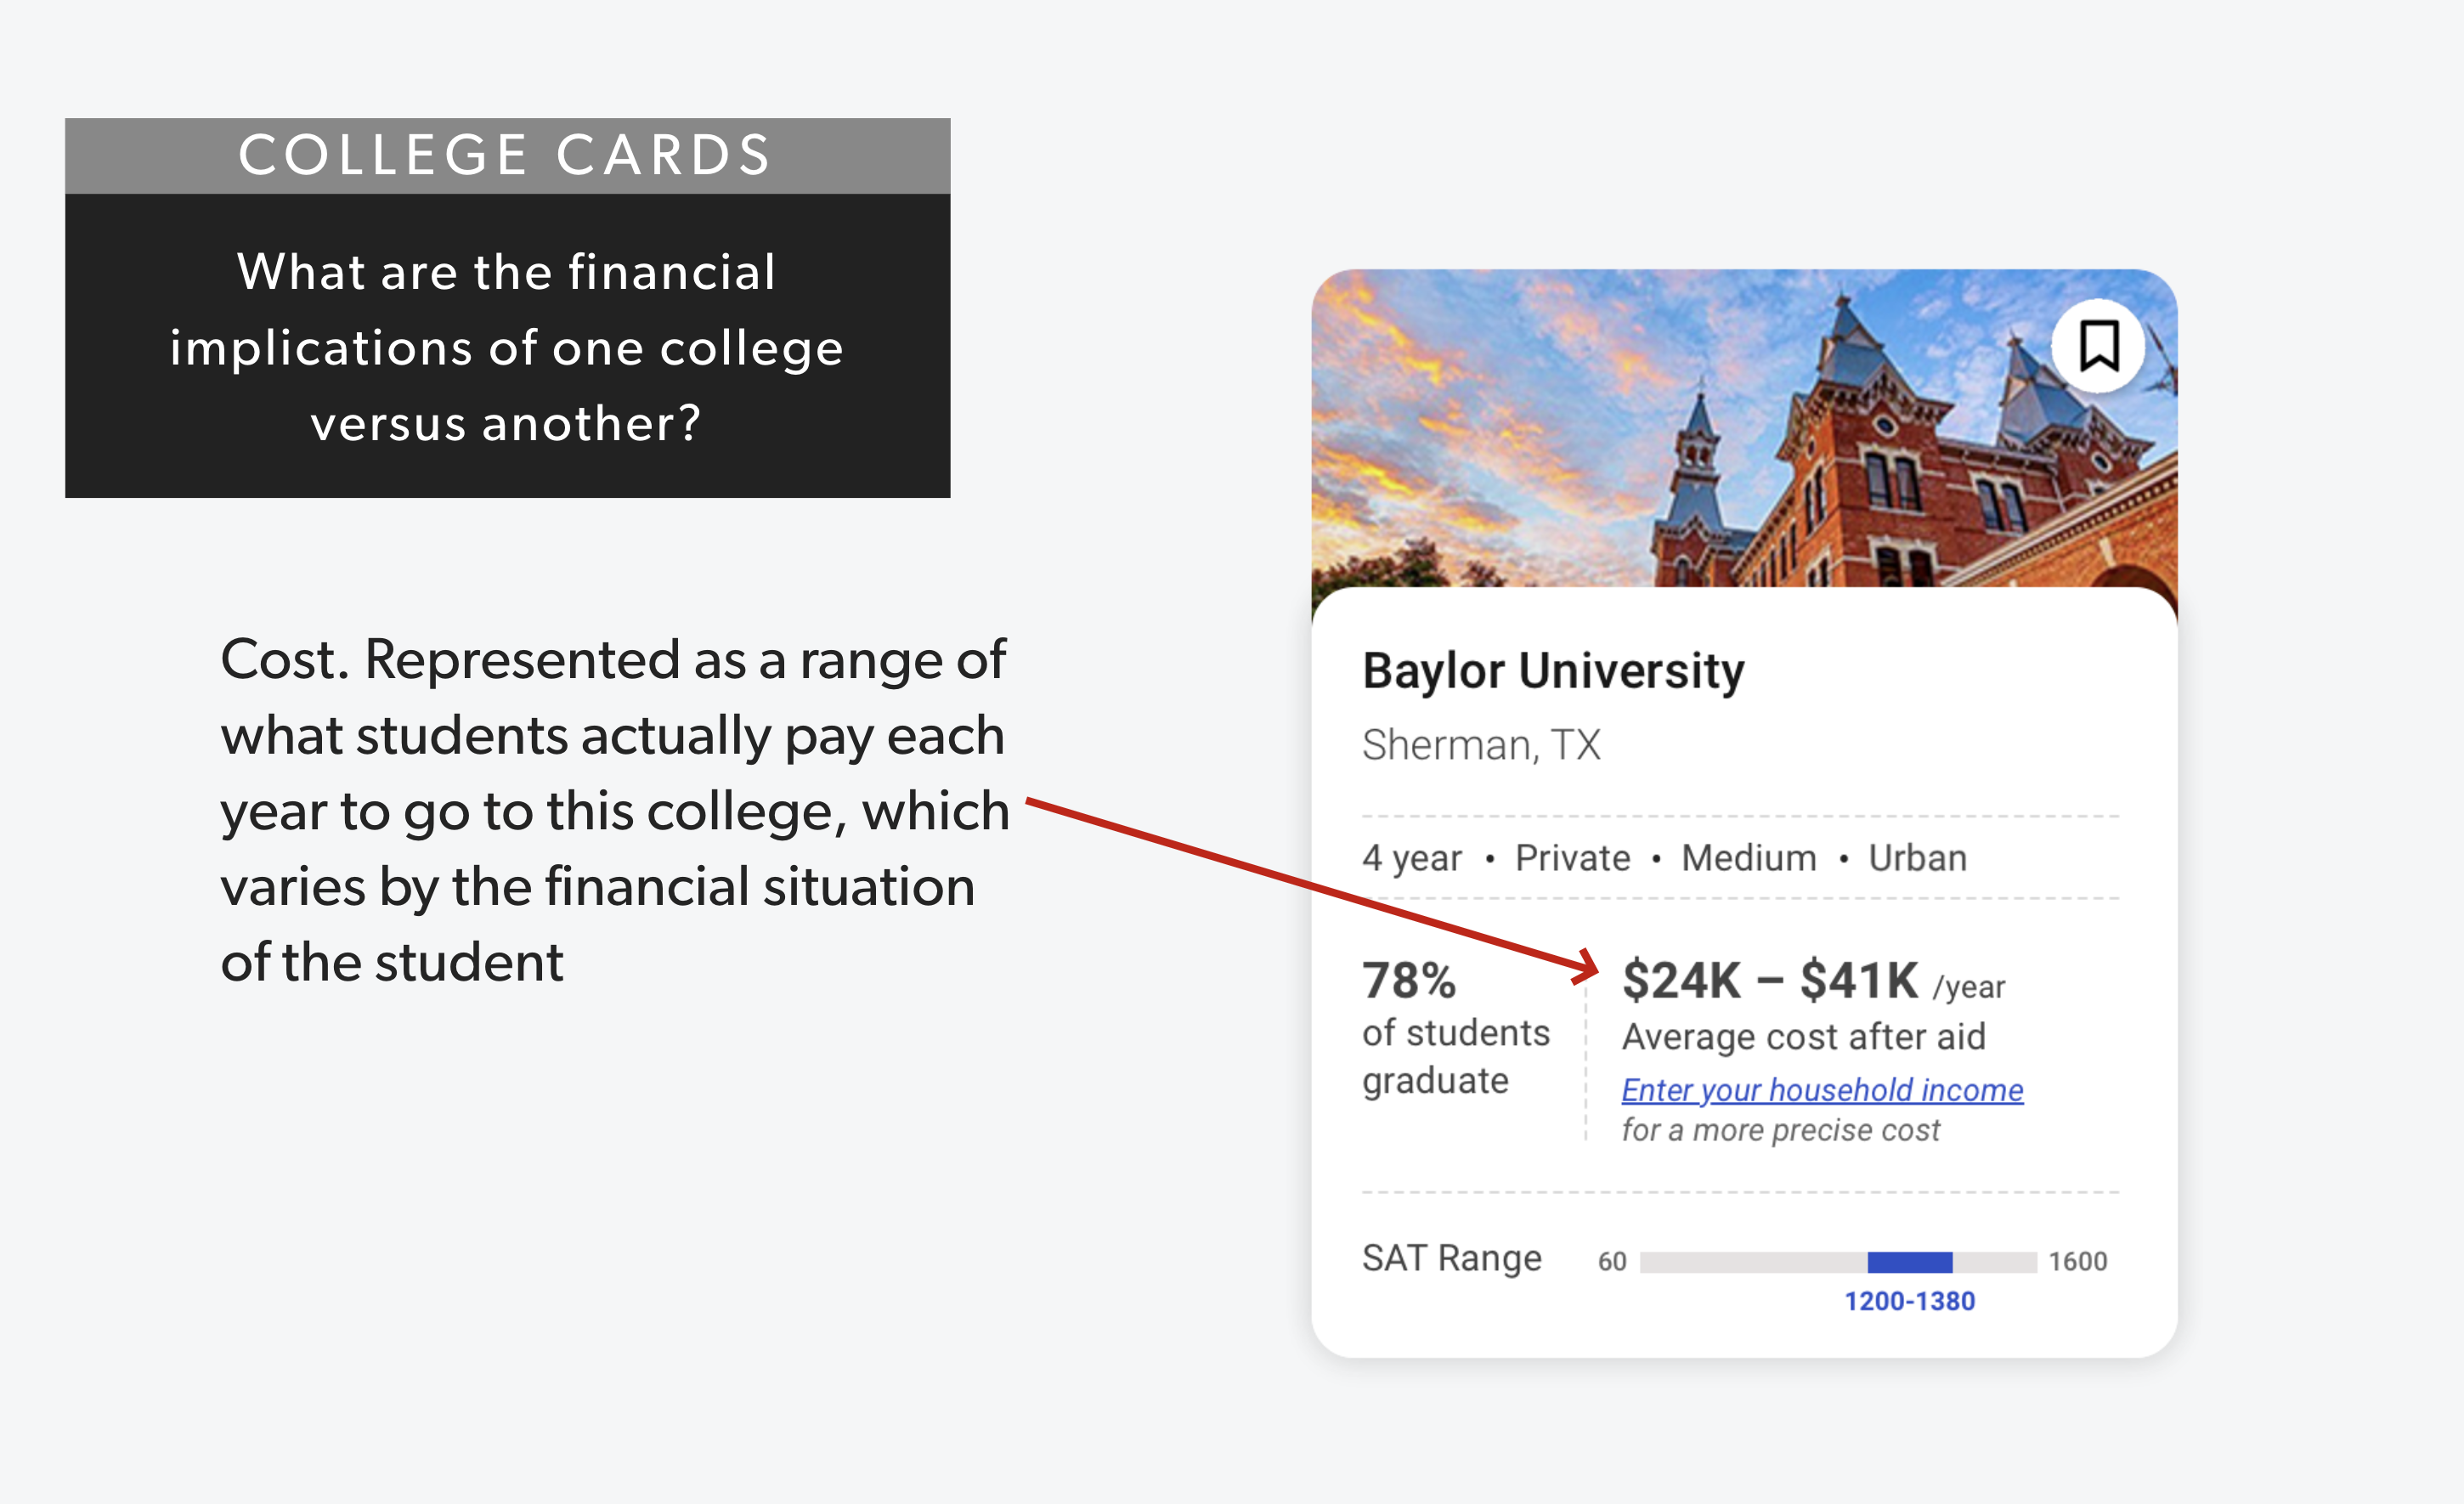 college search result card with cost represented as a range